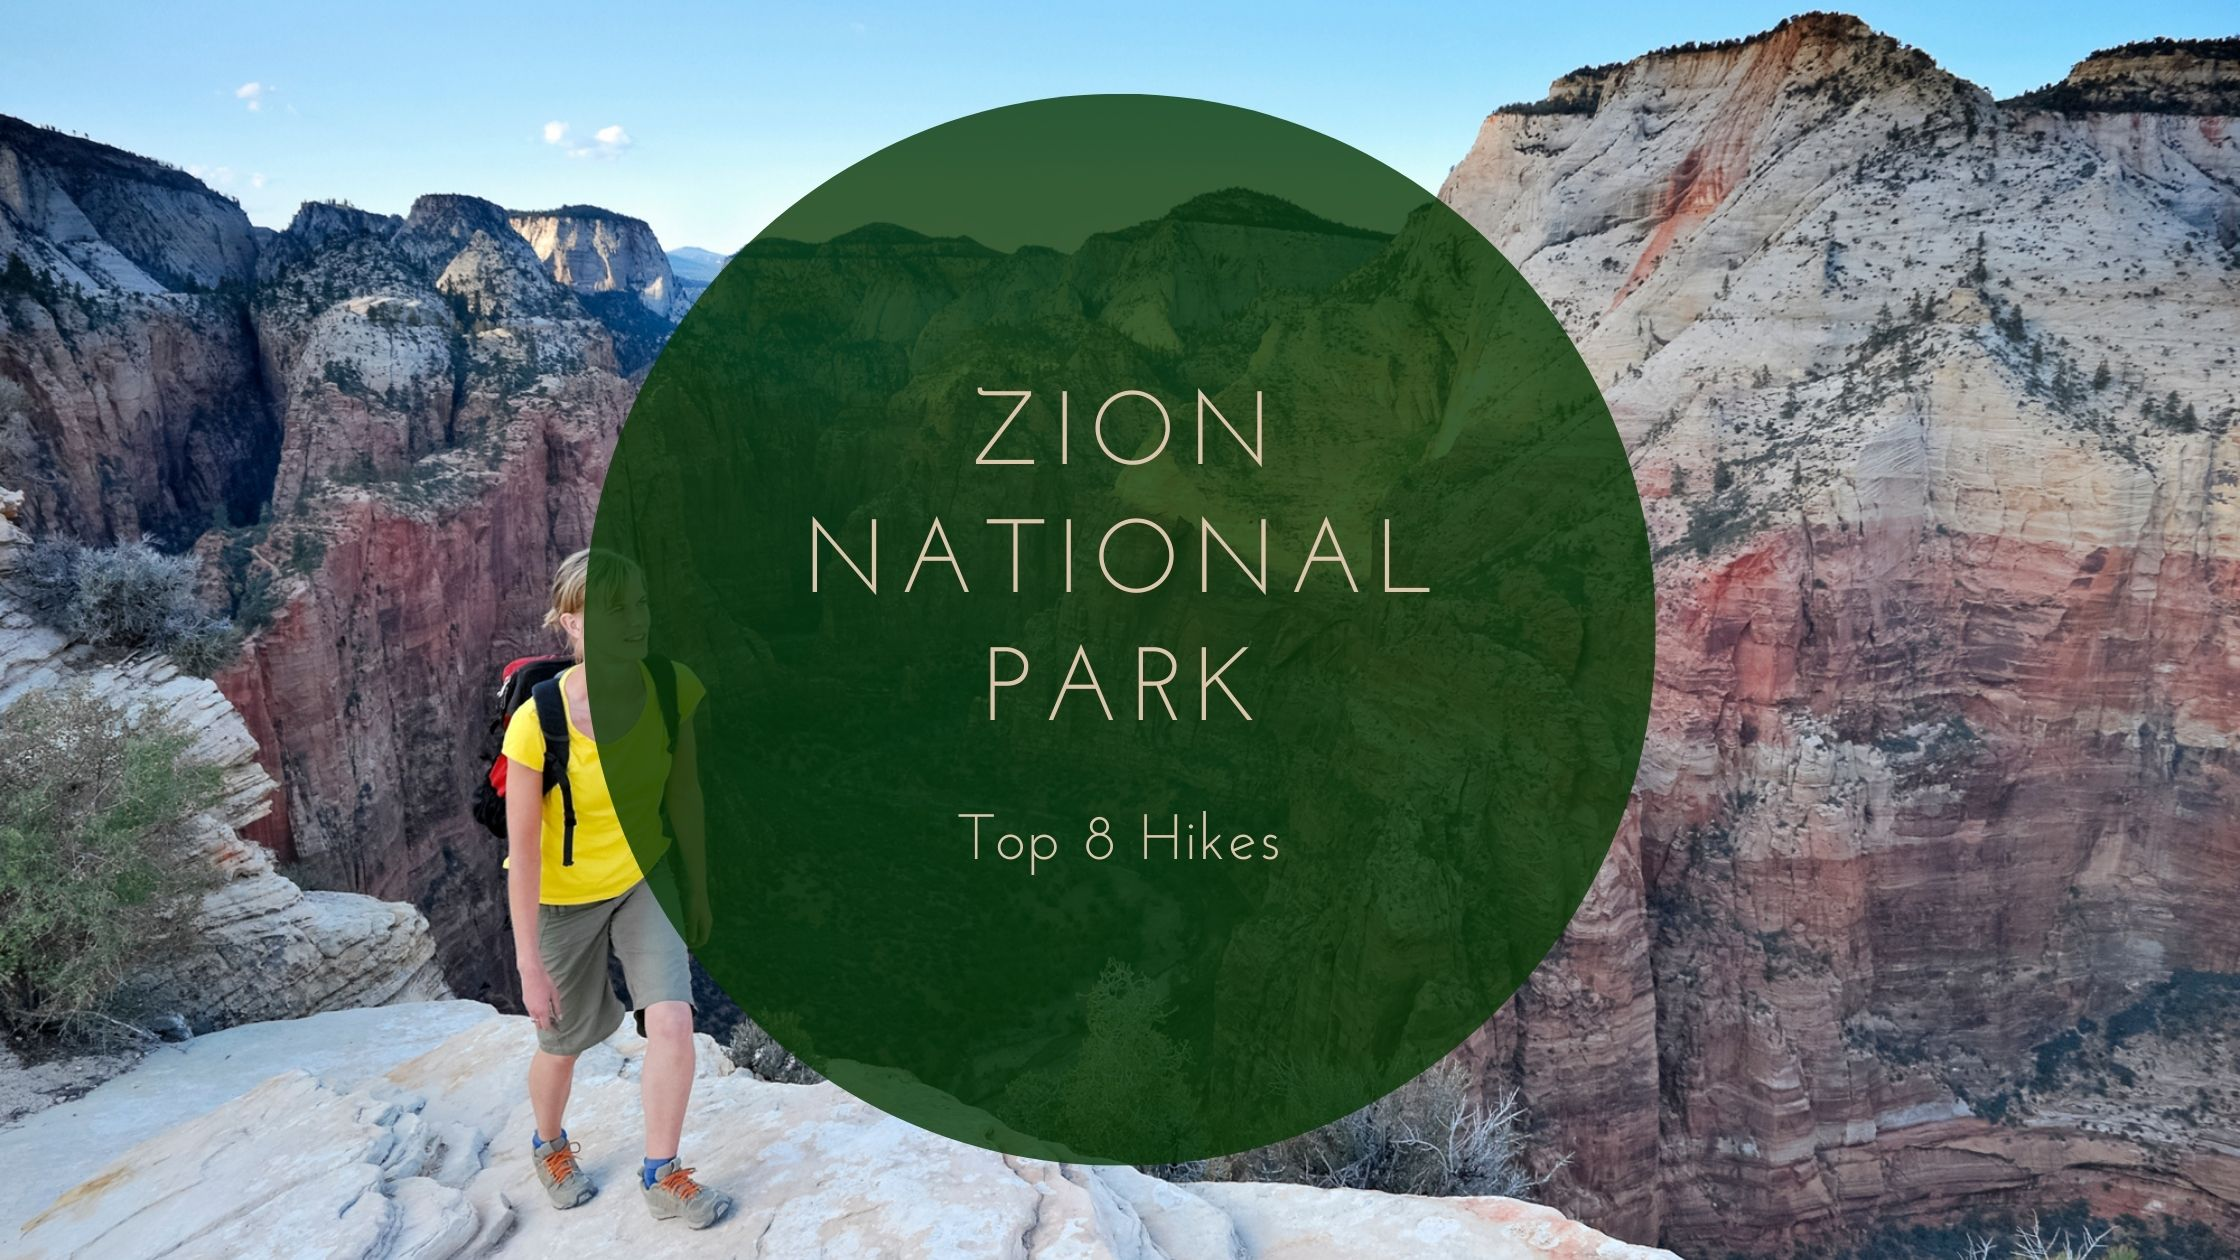 Top 8 Hikes in Zion National Park